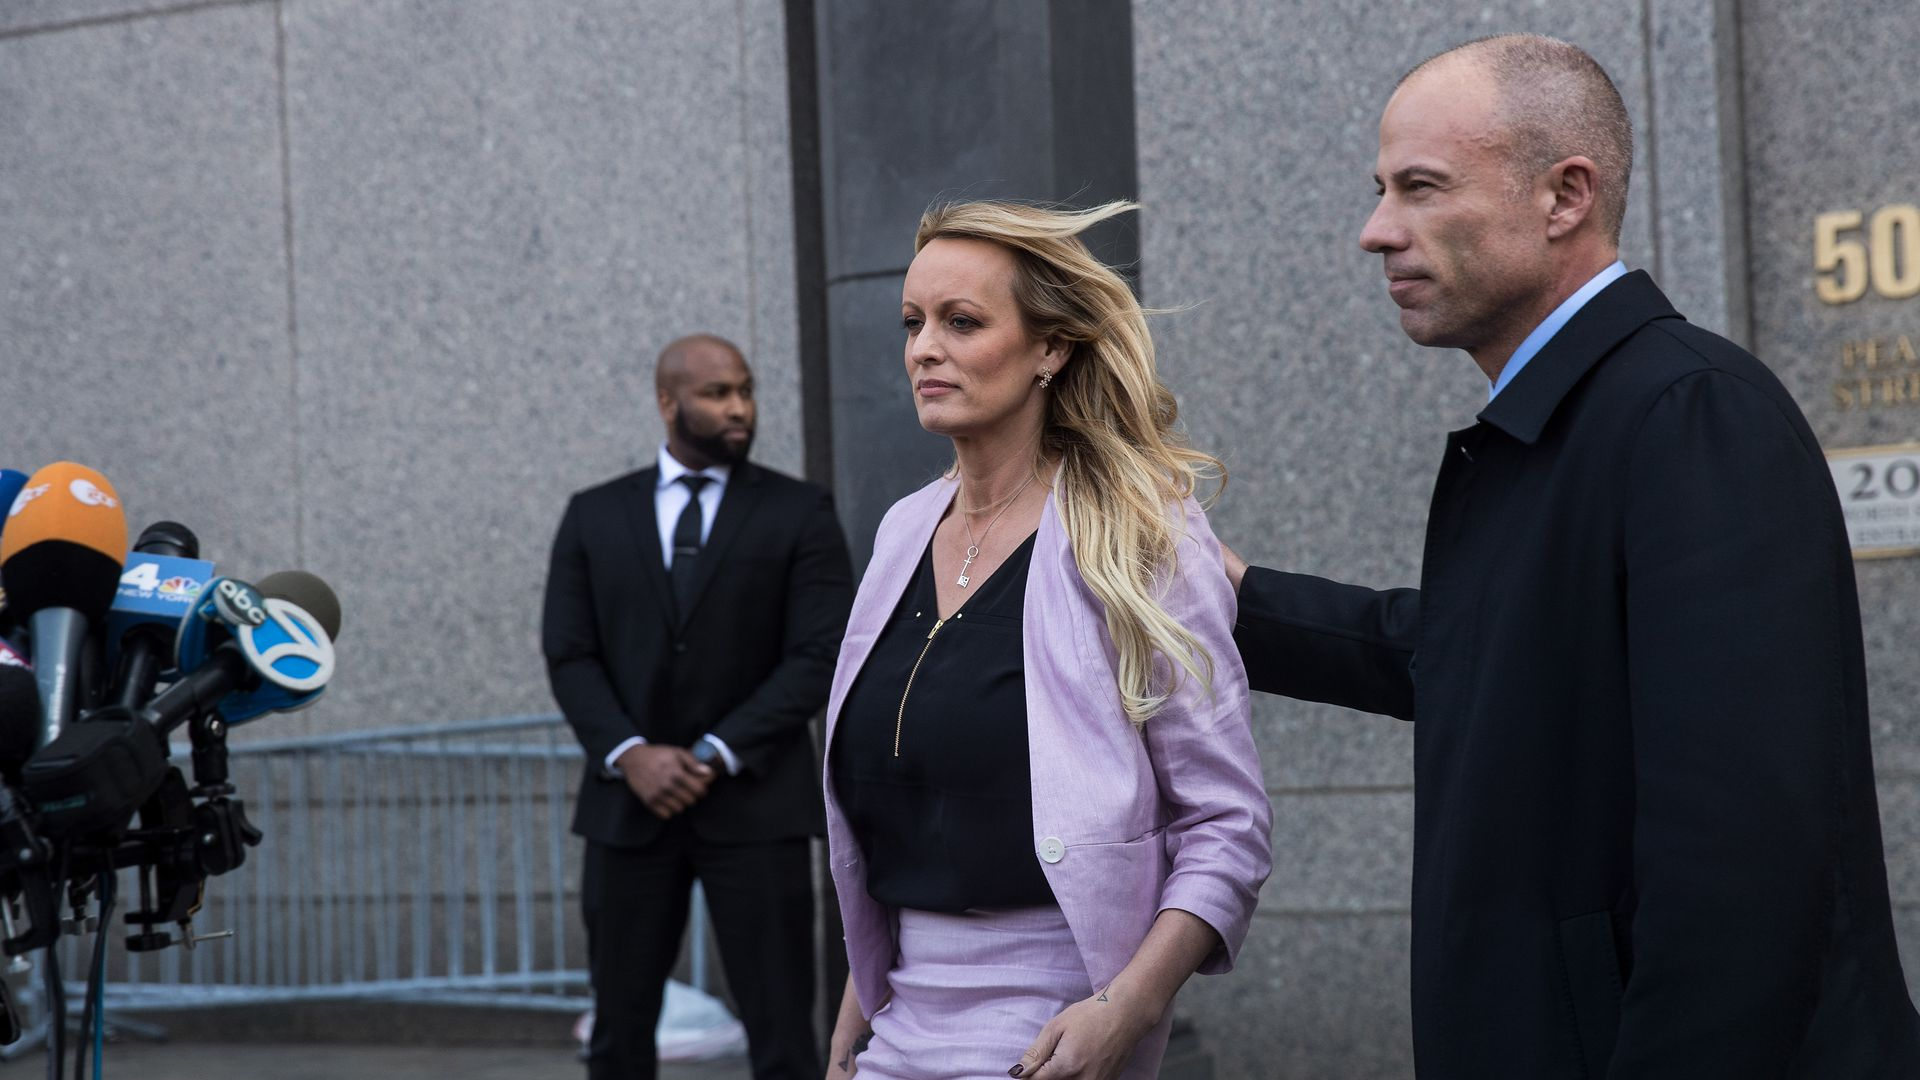 Adult film actress Stormy Daniels (Stephanie Clifford) and her attorney Michael Avenatti